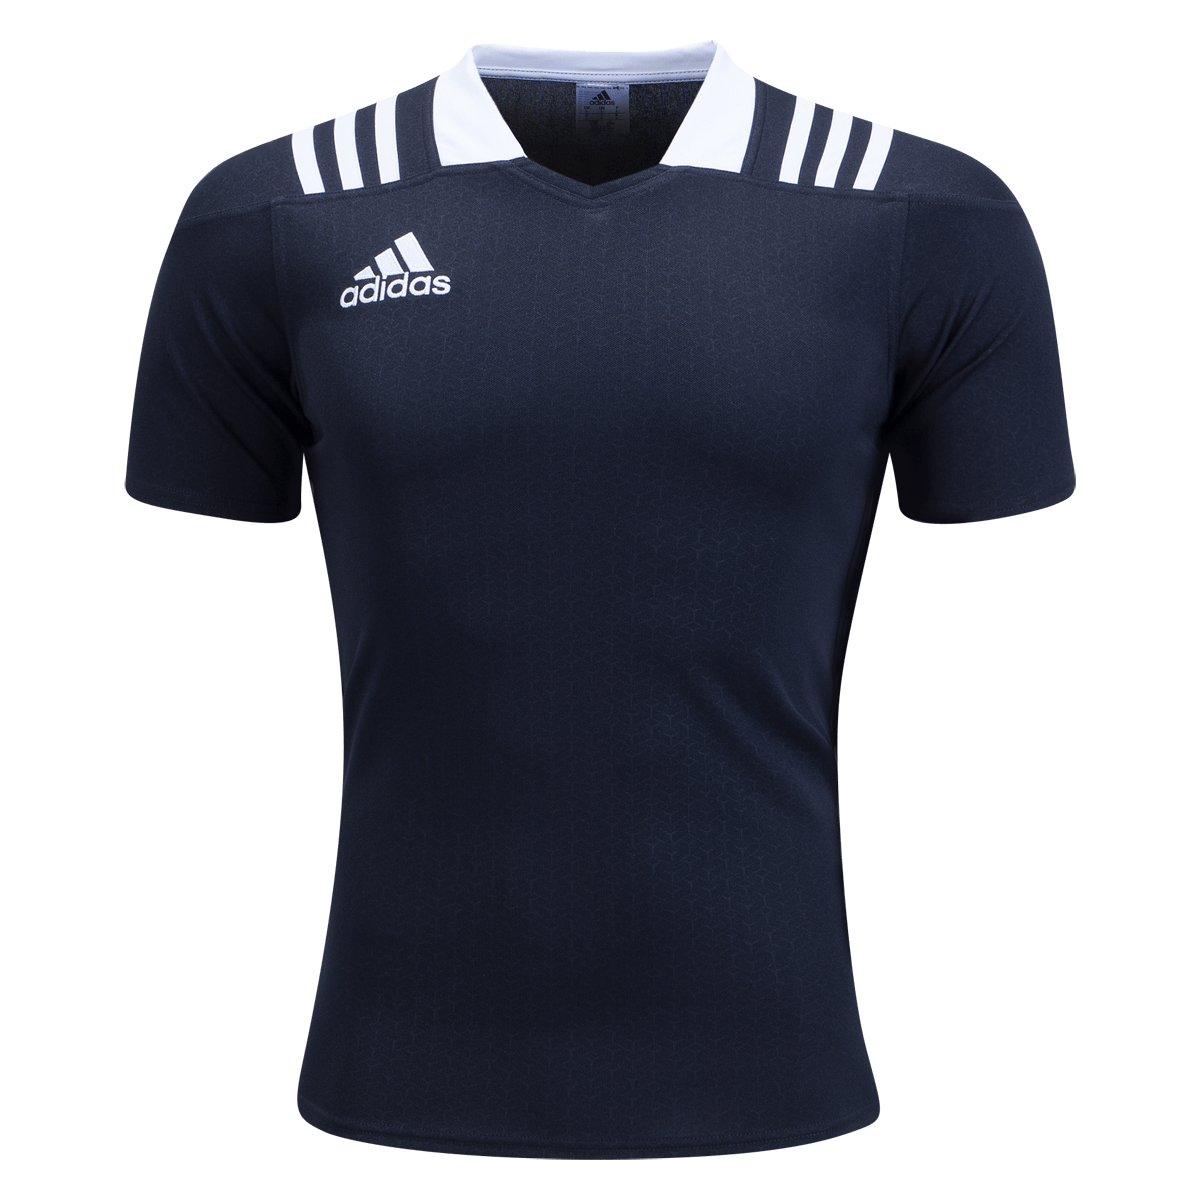 adidas Black/White 3 Stripes Fitted Jersey